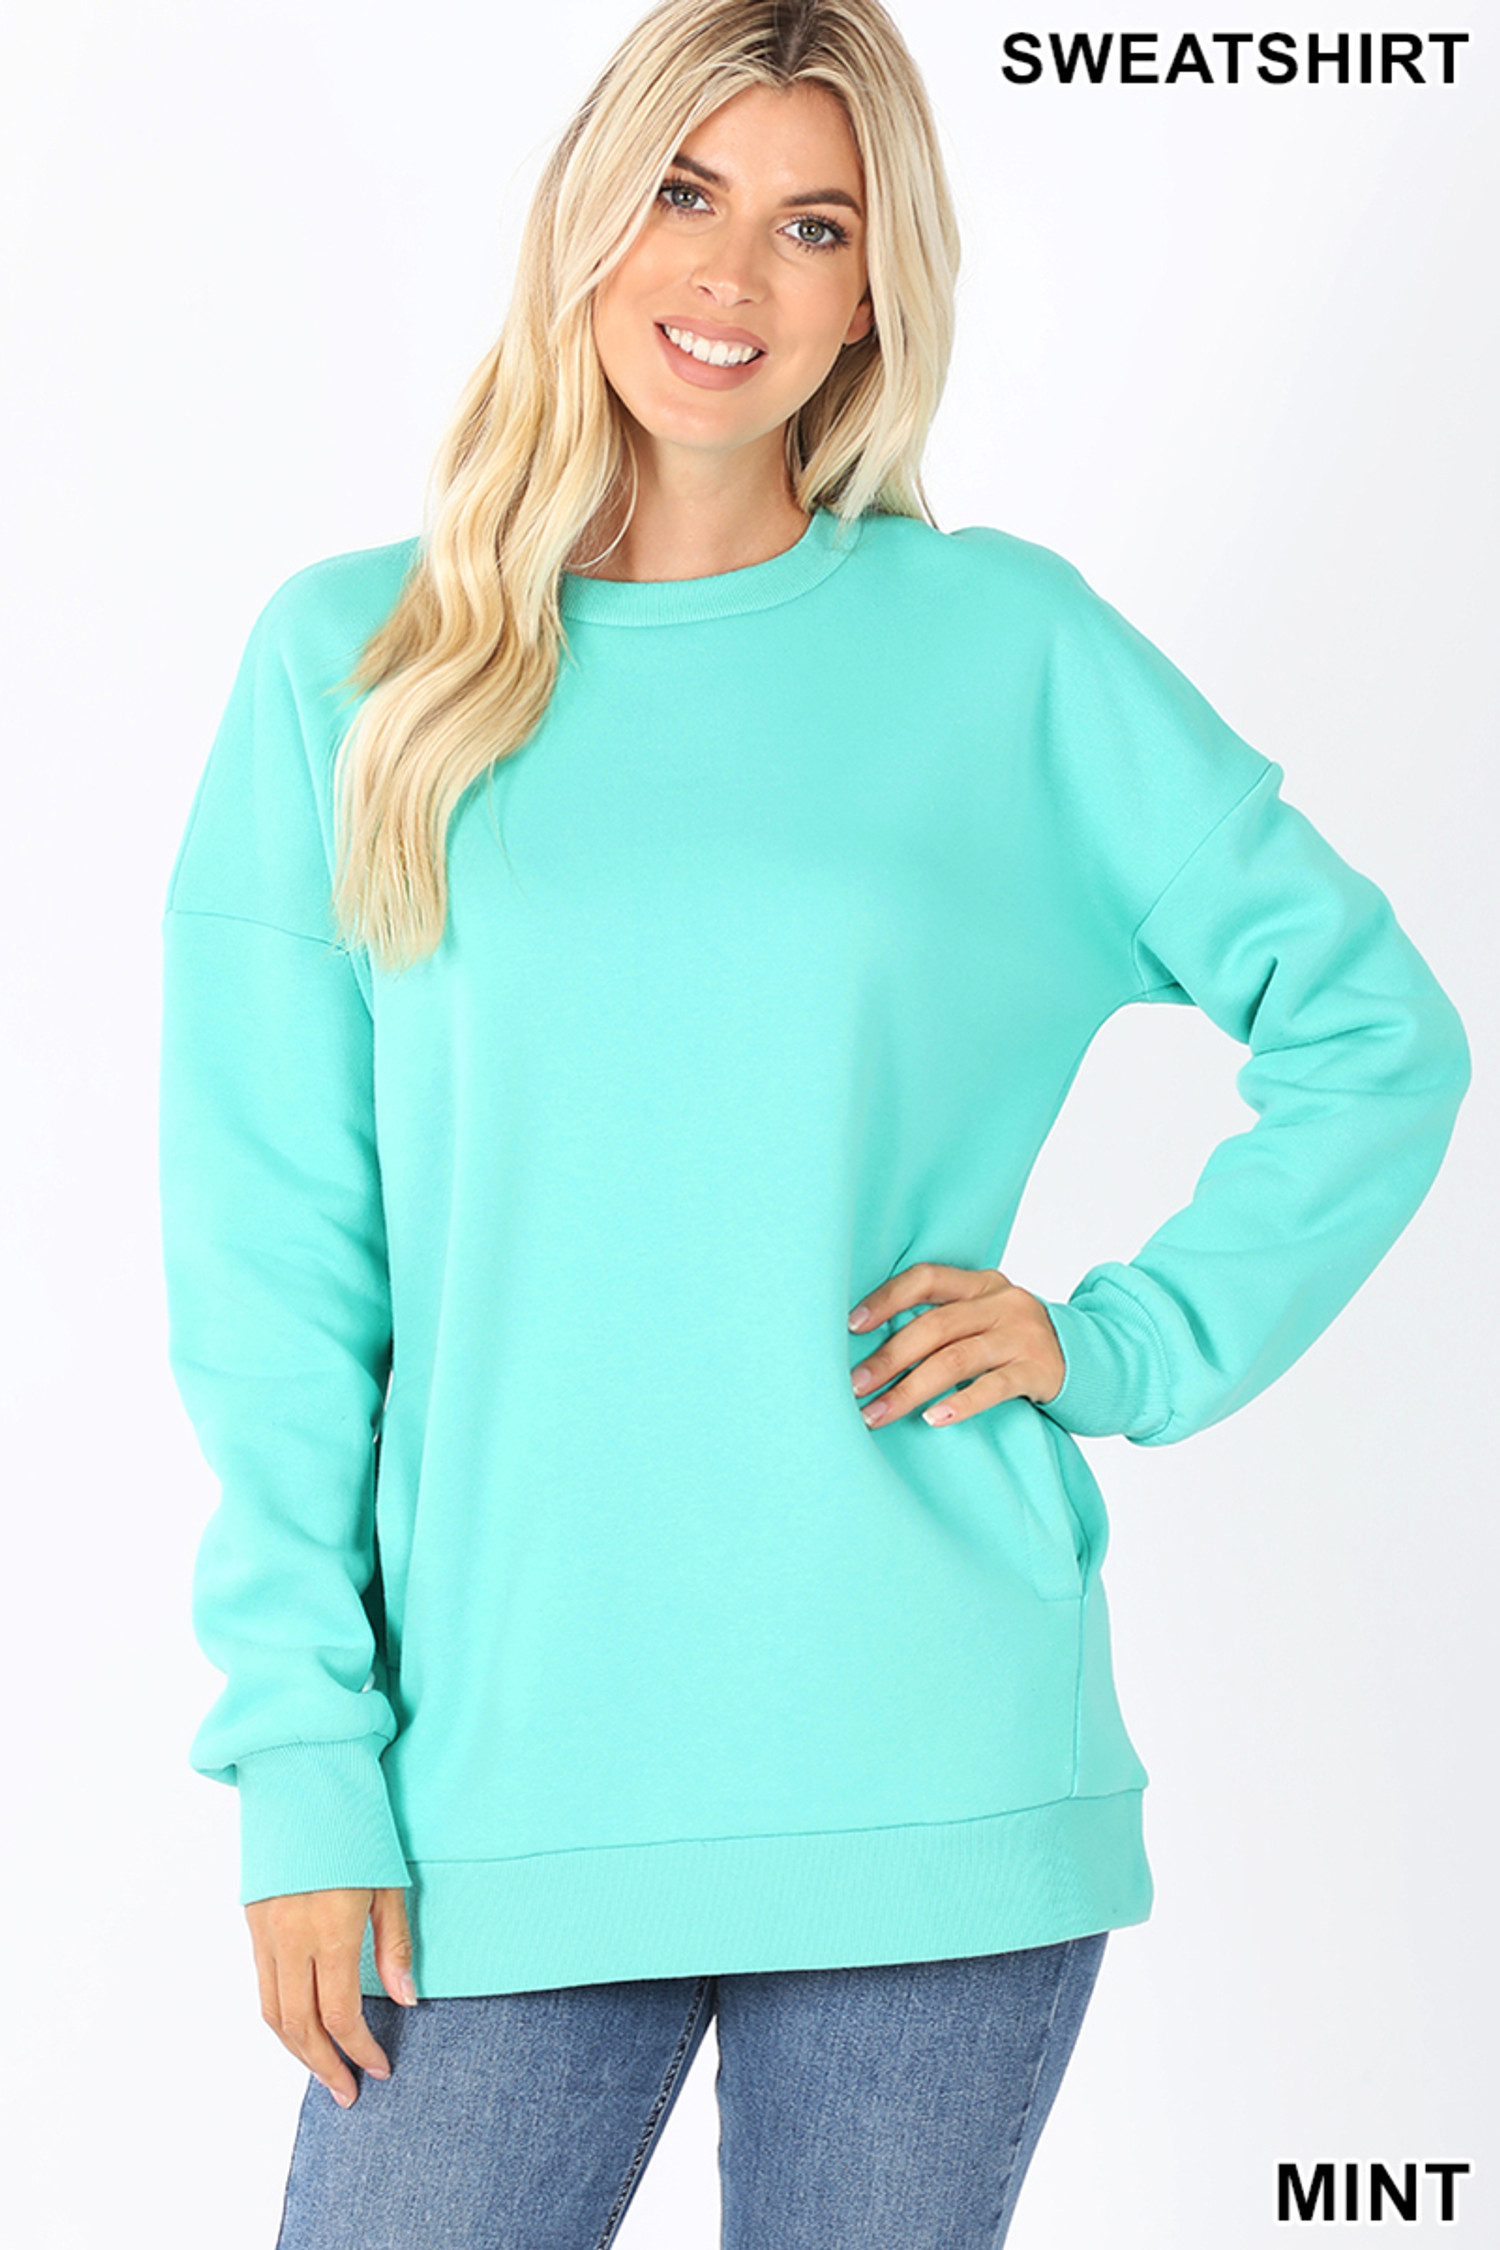 Front image of Mint Round Crew Neck Sweatshirt with Side Pockets